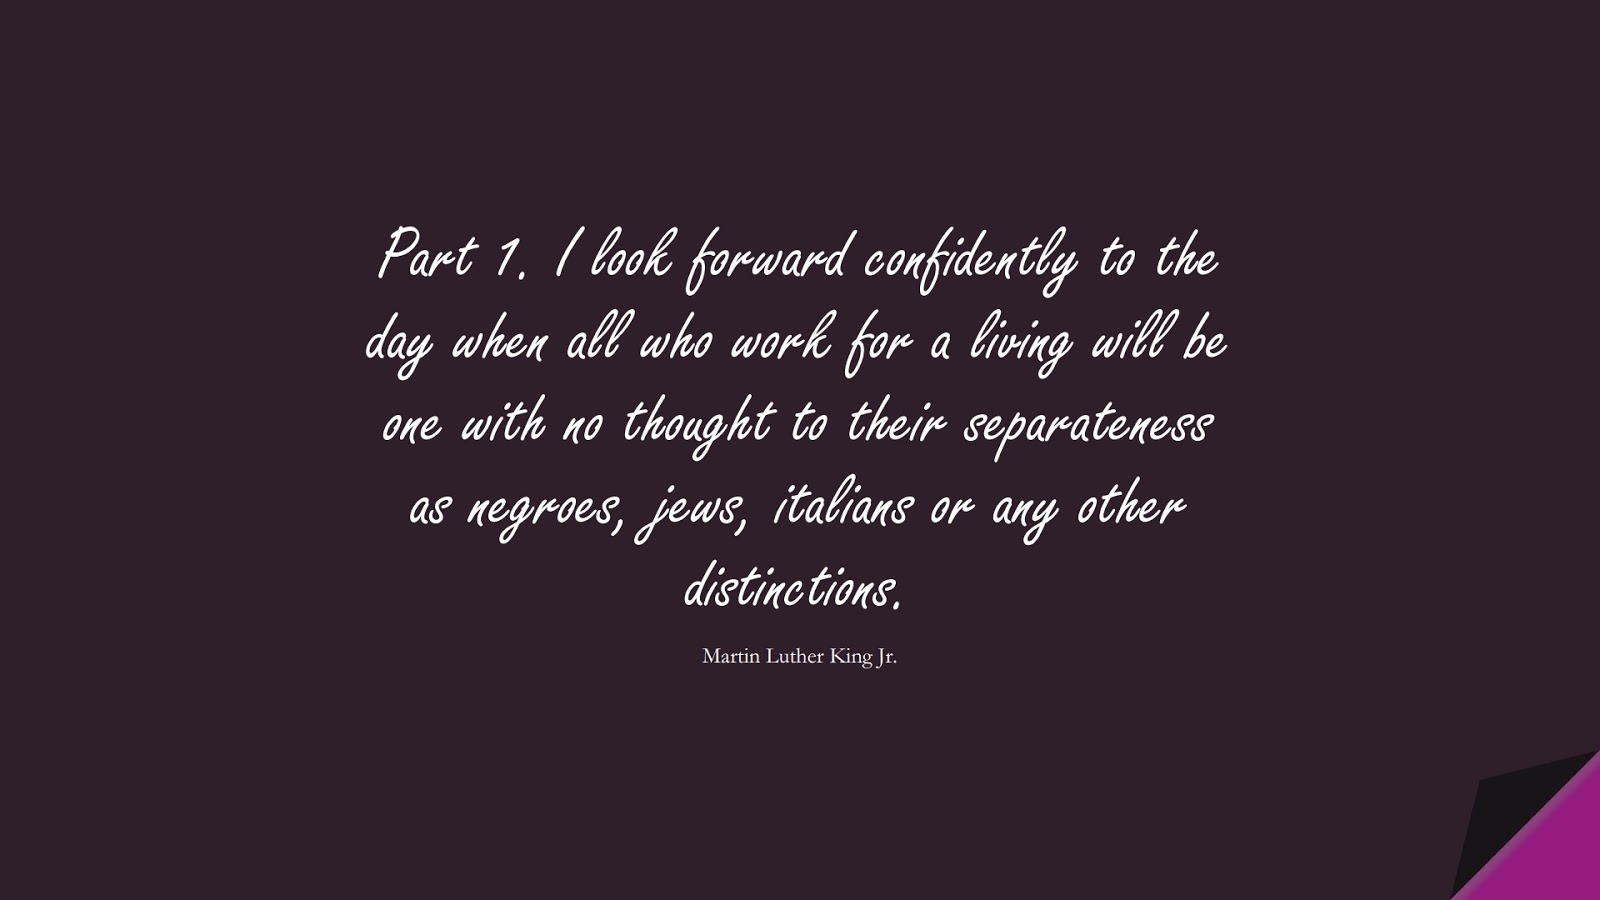 Part 1. I look forward confidently to the day when all who work for a living will be one with no thought to their separateness as negroes, jews, italians or any other distinctions. (Martin Luther King Jr.);  #HumanityQuotes